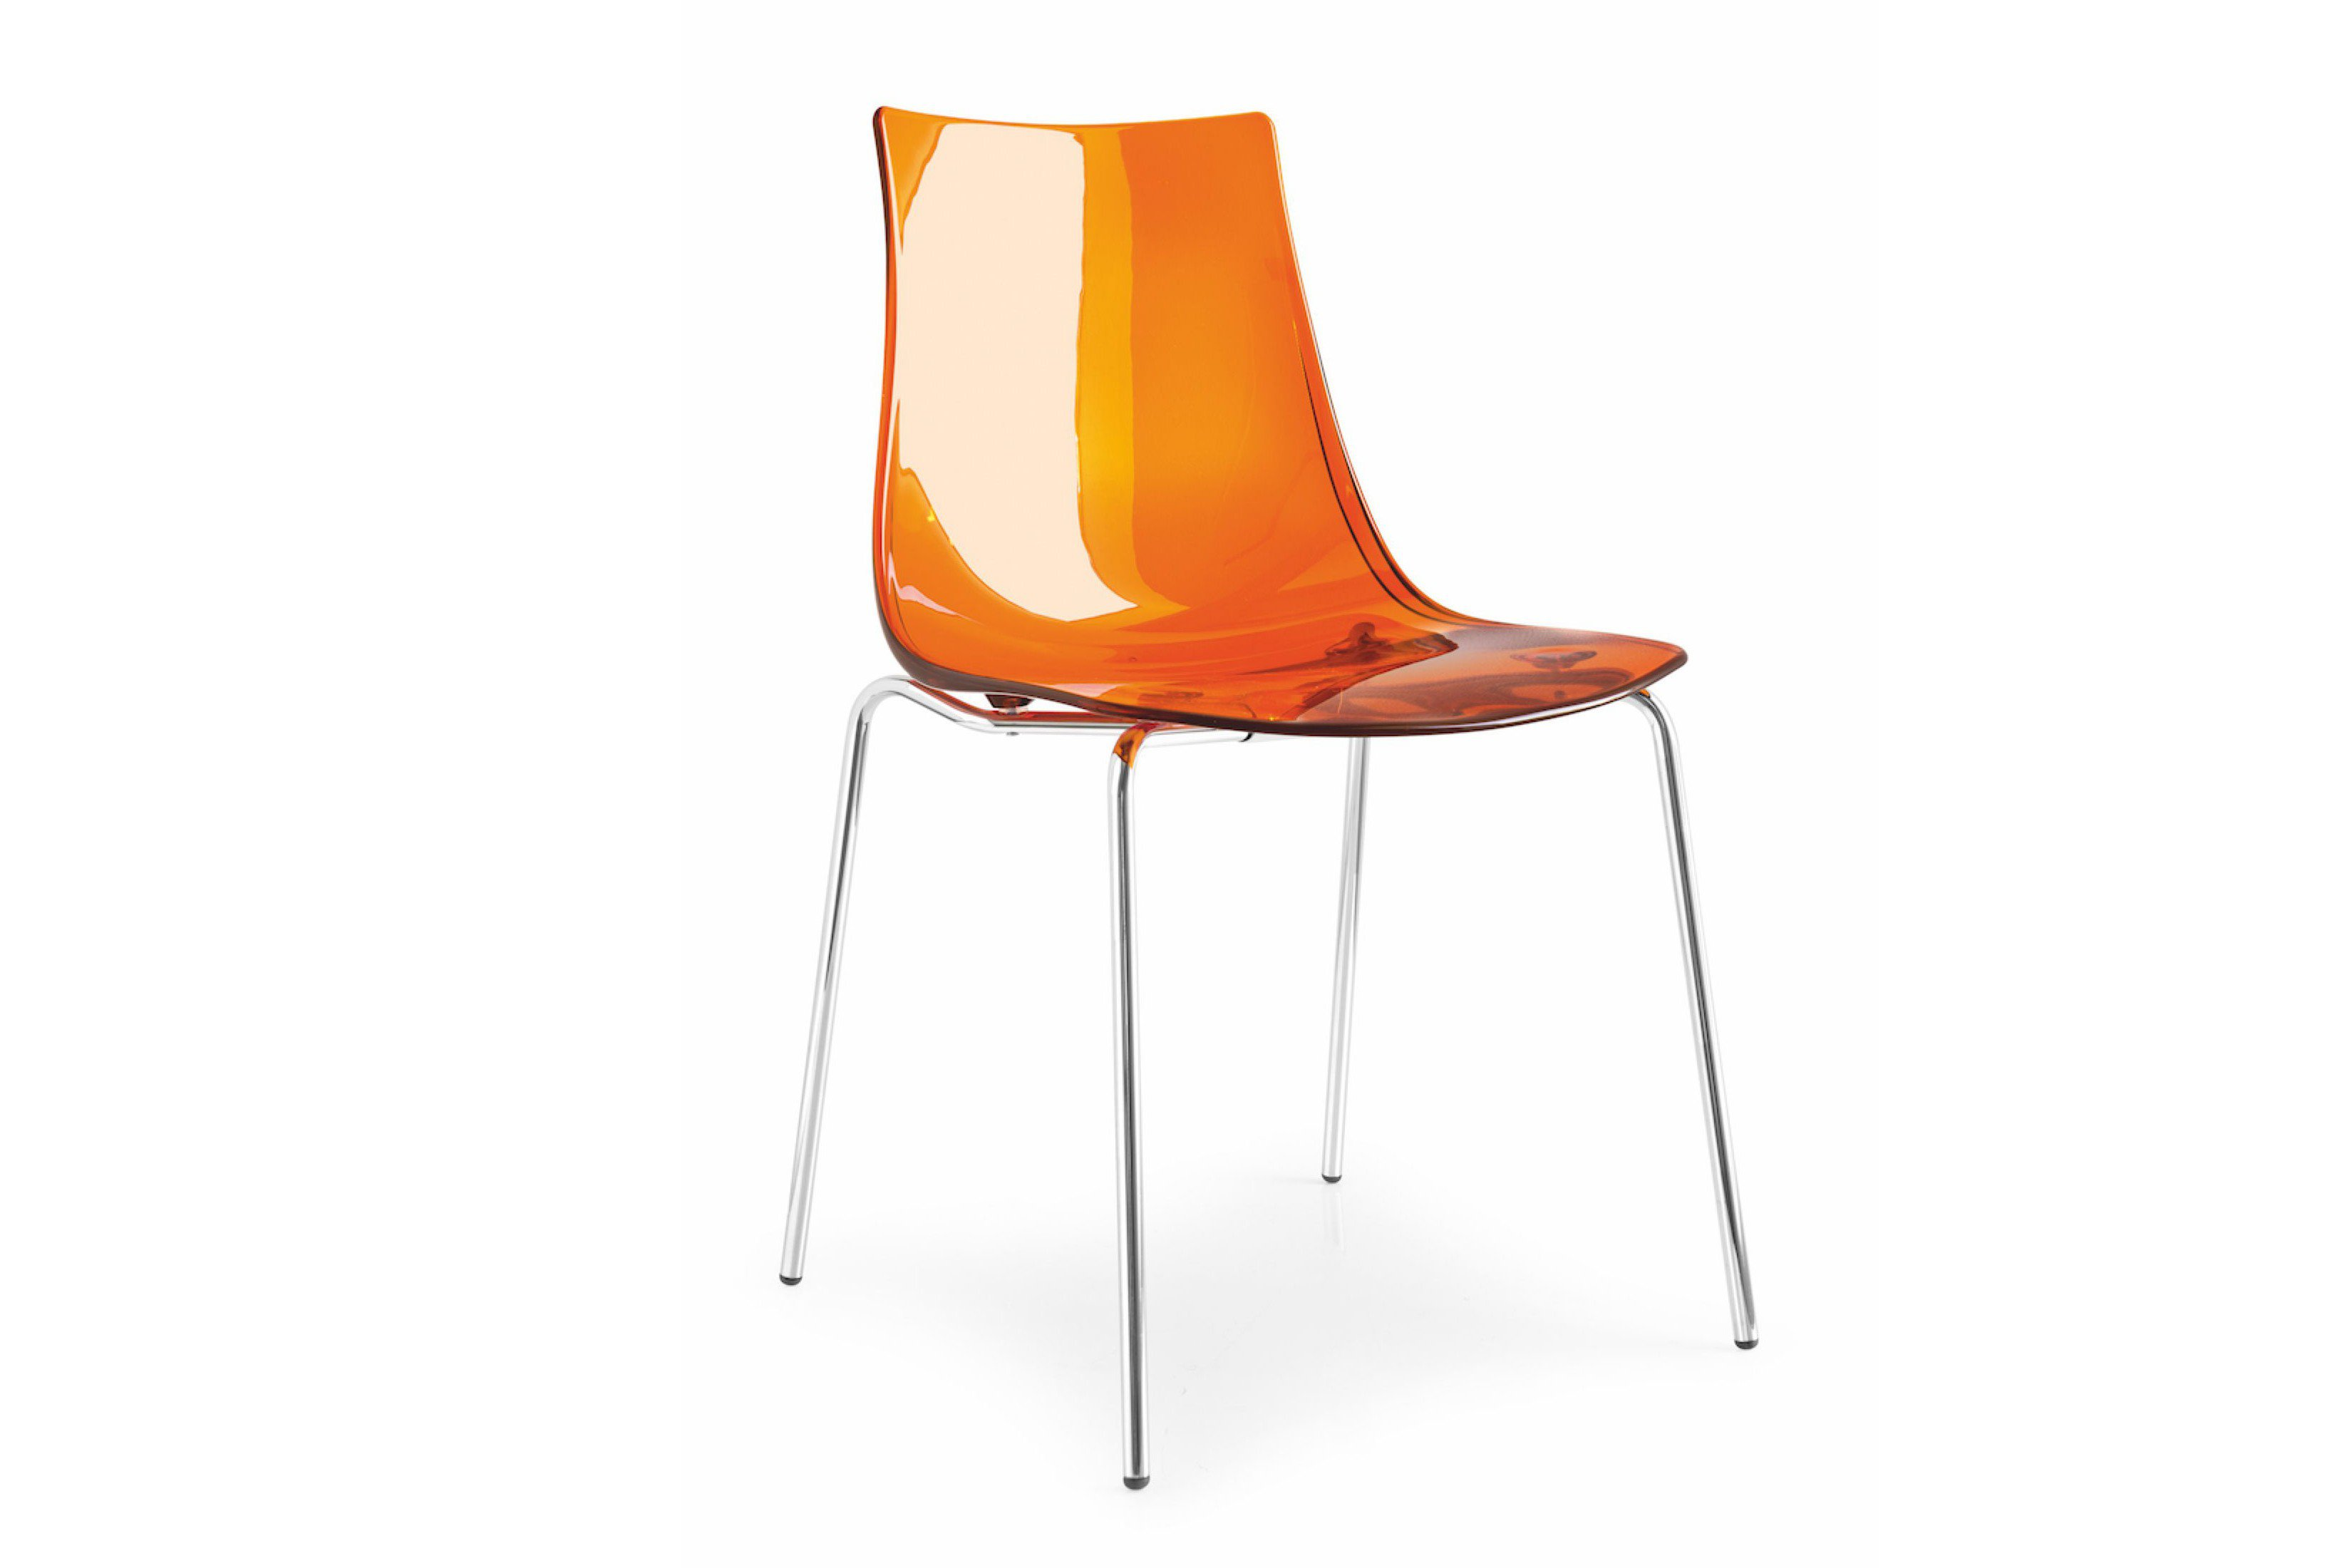 Calligaris Stuhl Connubia By Calligaris Stuhl Led Orange | Möbel Letz - Ihr ...